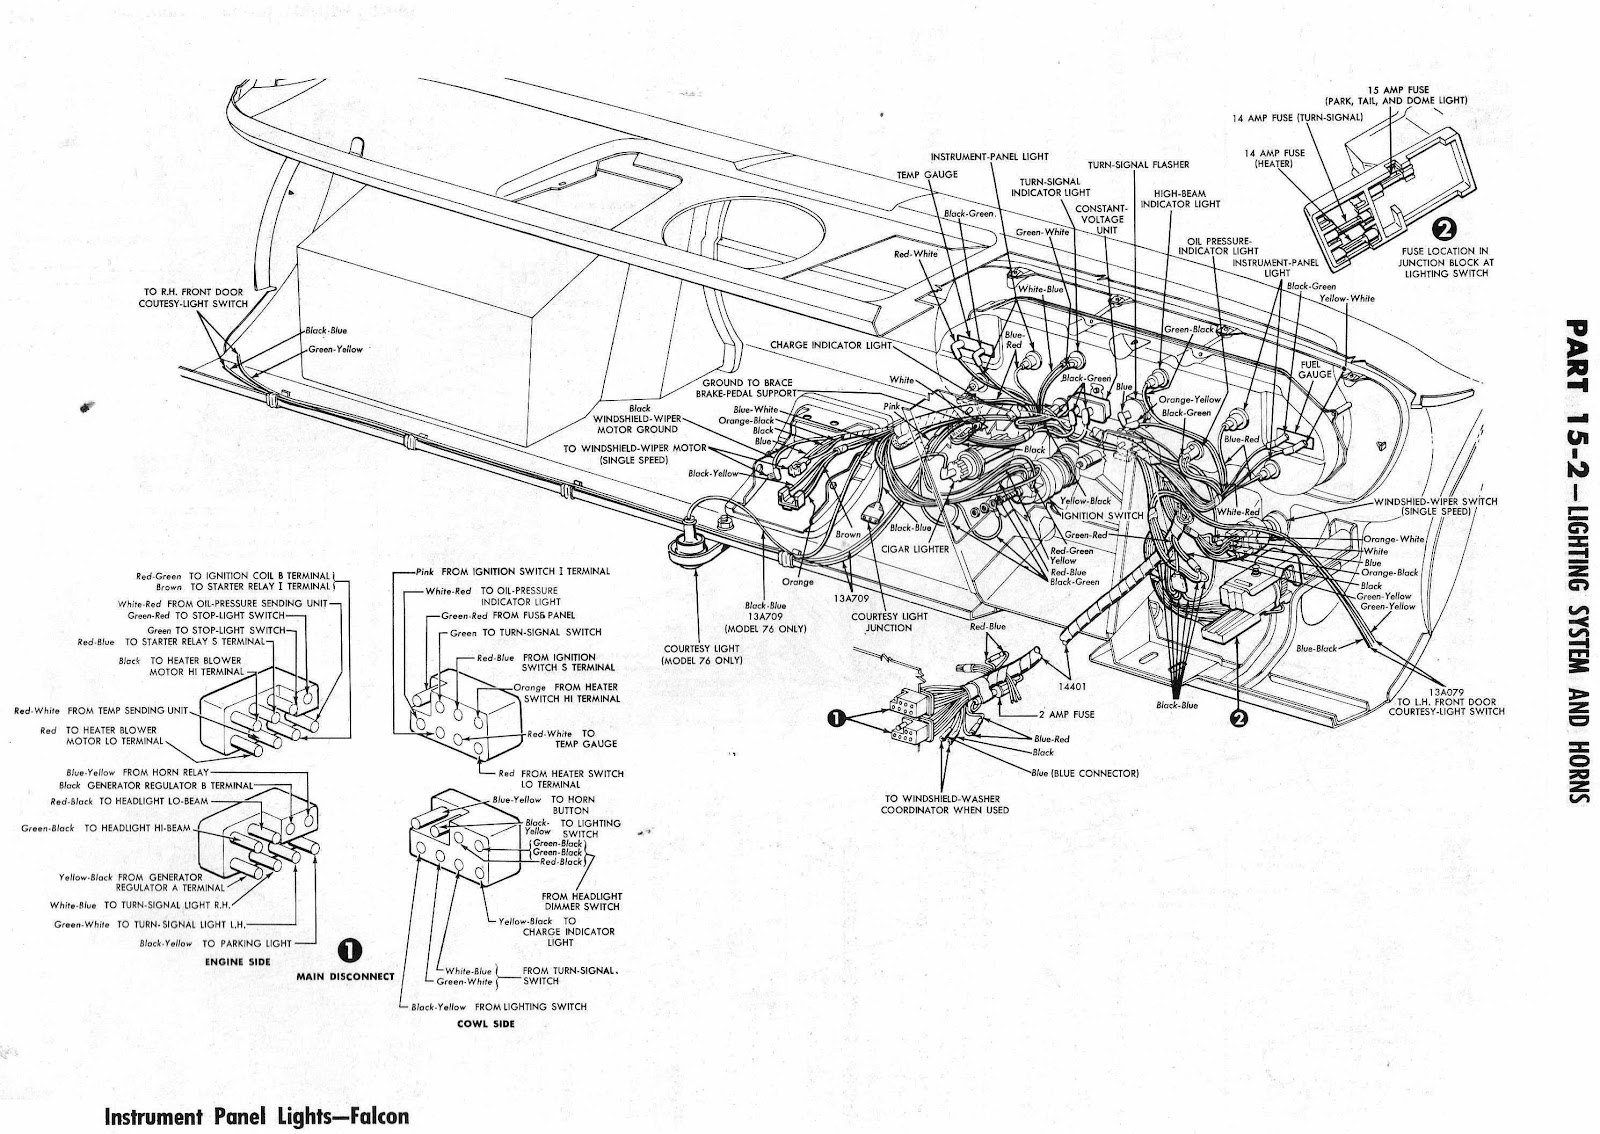 Ford+Falcon+1964+Lighting+System+and+Horns+Wiring+Diagram au falcon wiring diagram falcon guide \u2022 wiring diagrams j squared co ba falcon wiring diagram free download at nearapp.co